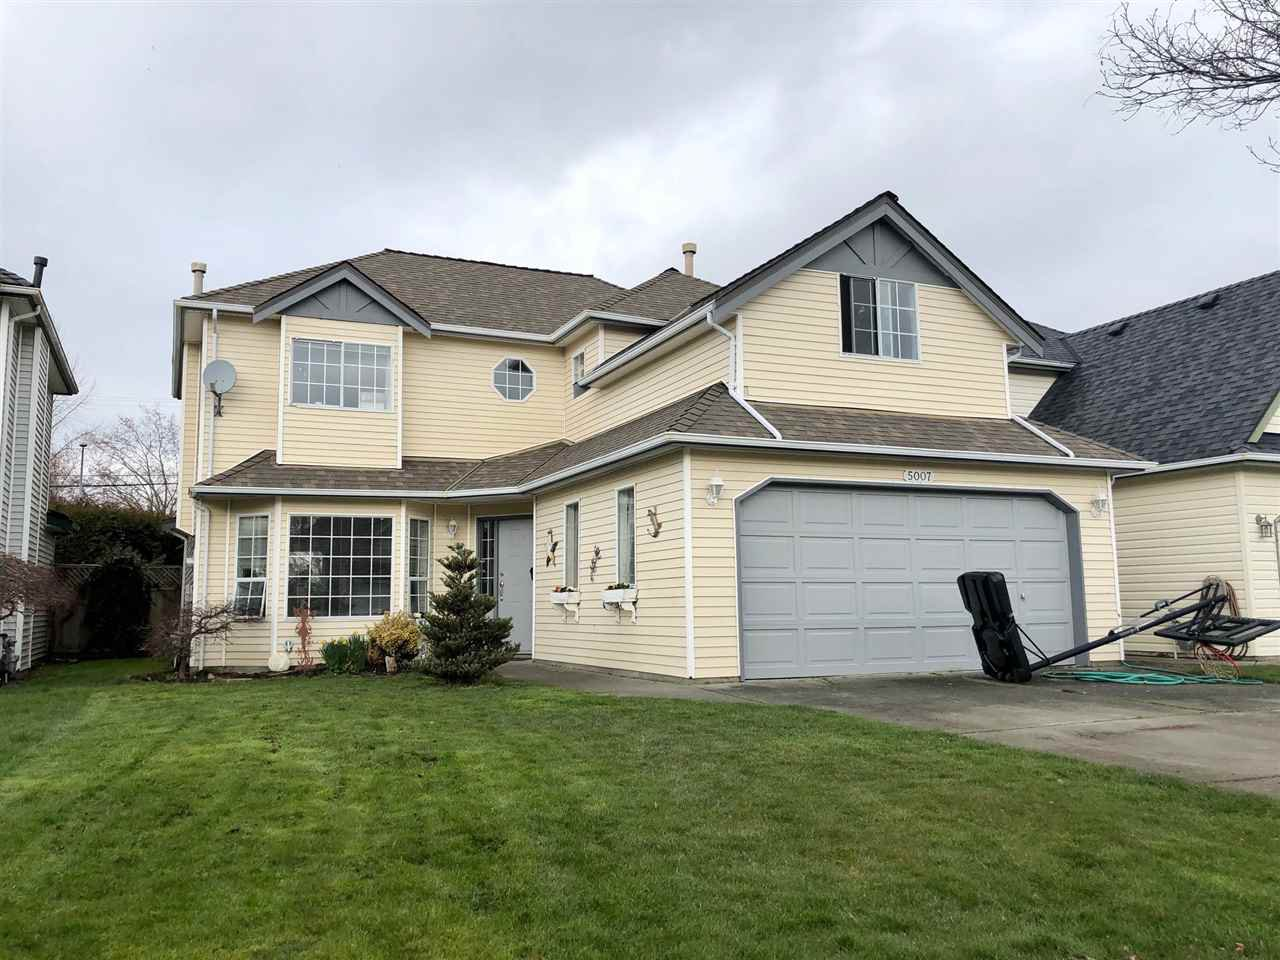 Main Photo: 5007 MARINER Place in Delta: Neilsen Grove House for sale (Ladner)  : MLS®# R2438945